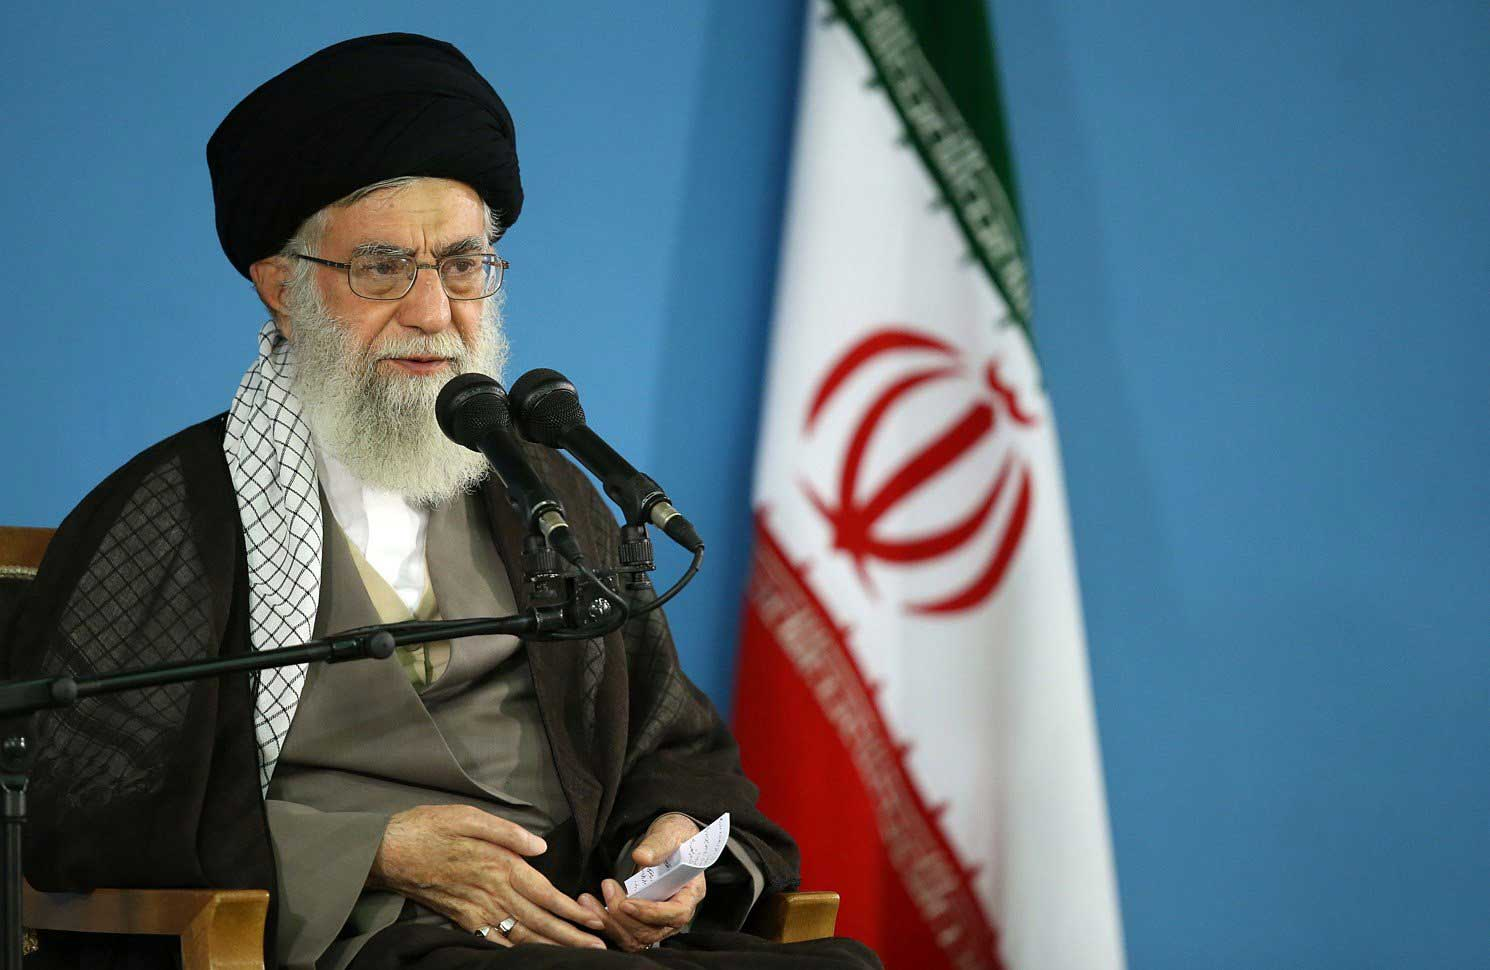 Iran's Supreme Leader Ayatollah Ali Khamenei shows him delivering a speech during a meeting in Tehran on Sept. 9, 2015.